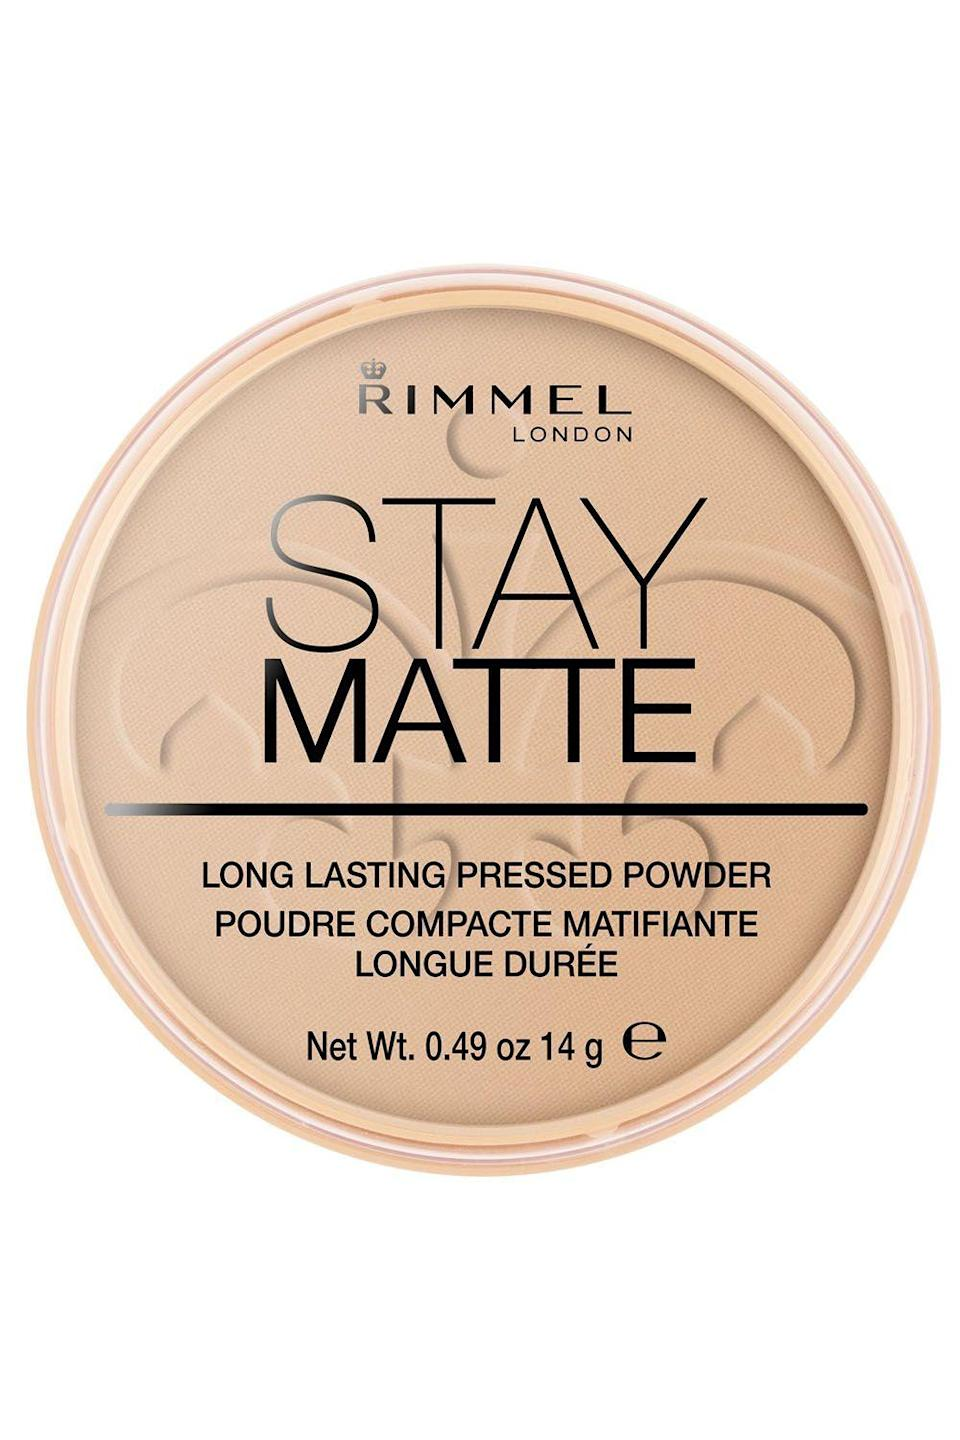 """<p><strong>Rimmel</strong></p><p>amazon.com</p><p><strong>$3.99</strong></p><p><a href=""""https://www.amazon.com/dp/B004M9L0WW?tag=syn-yahoo-20&ascsubtag=%5Bartid%7C10049.g.32729898%5Bsrc%7Cyahoo-us"""" rel=""""nofollow noopener"""" target=""""_blank"""" data-ylk=""""slk:Shop Now"""" class=""""link rapid-noclick-resp"""">Shop Now</a></p><p>IDK about you, but my T-zone (and, TBH, the rest of my face...) is basically an oil slick by the time 1PM comes around. Don't worry, though, because this drugstore setting powder puts in the work. Just tap it on in the morning—<strong>not only will it prevent a midday oil attack,</strong> but it'll also help smooth out the appearance of your <a href=""""https://www.cosmopolitan.com/style-beauty/beauty/news/a36360/ways-to-make-your-pores-smaller/"""" rel=""""nofollow noopener"""" target=""""_blank"""" data-ylk=""""slk:pores"""" class=""""link rapid-noclick-resp"""">pores</a>.</p>"""